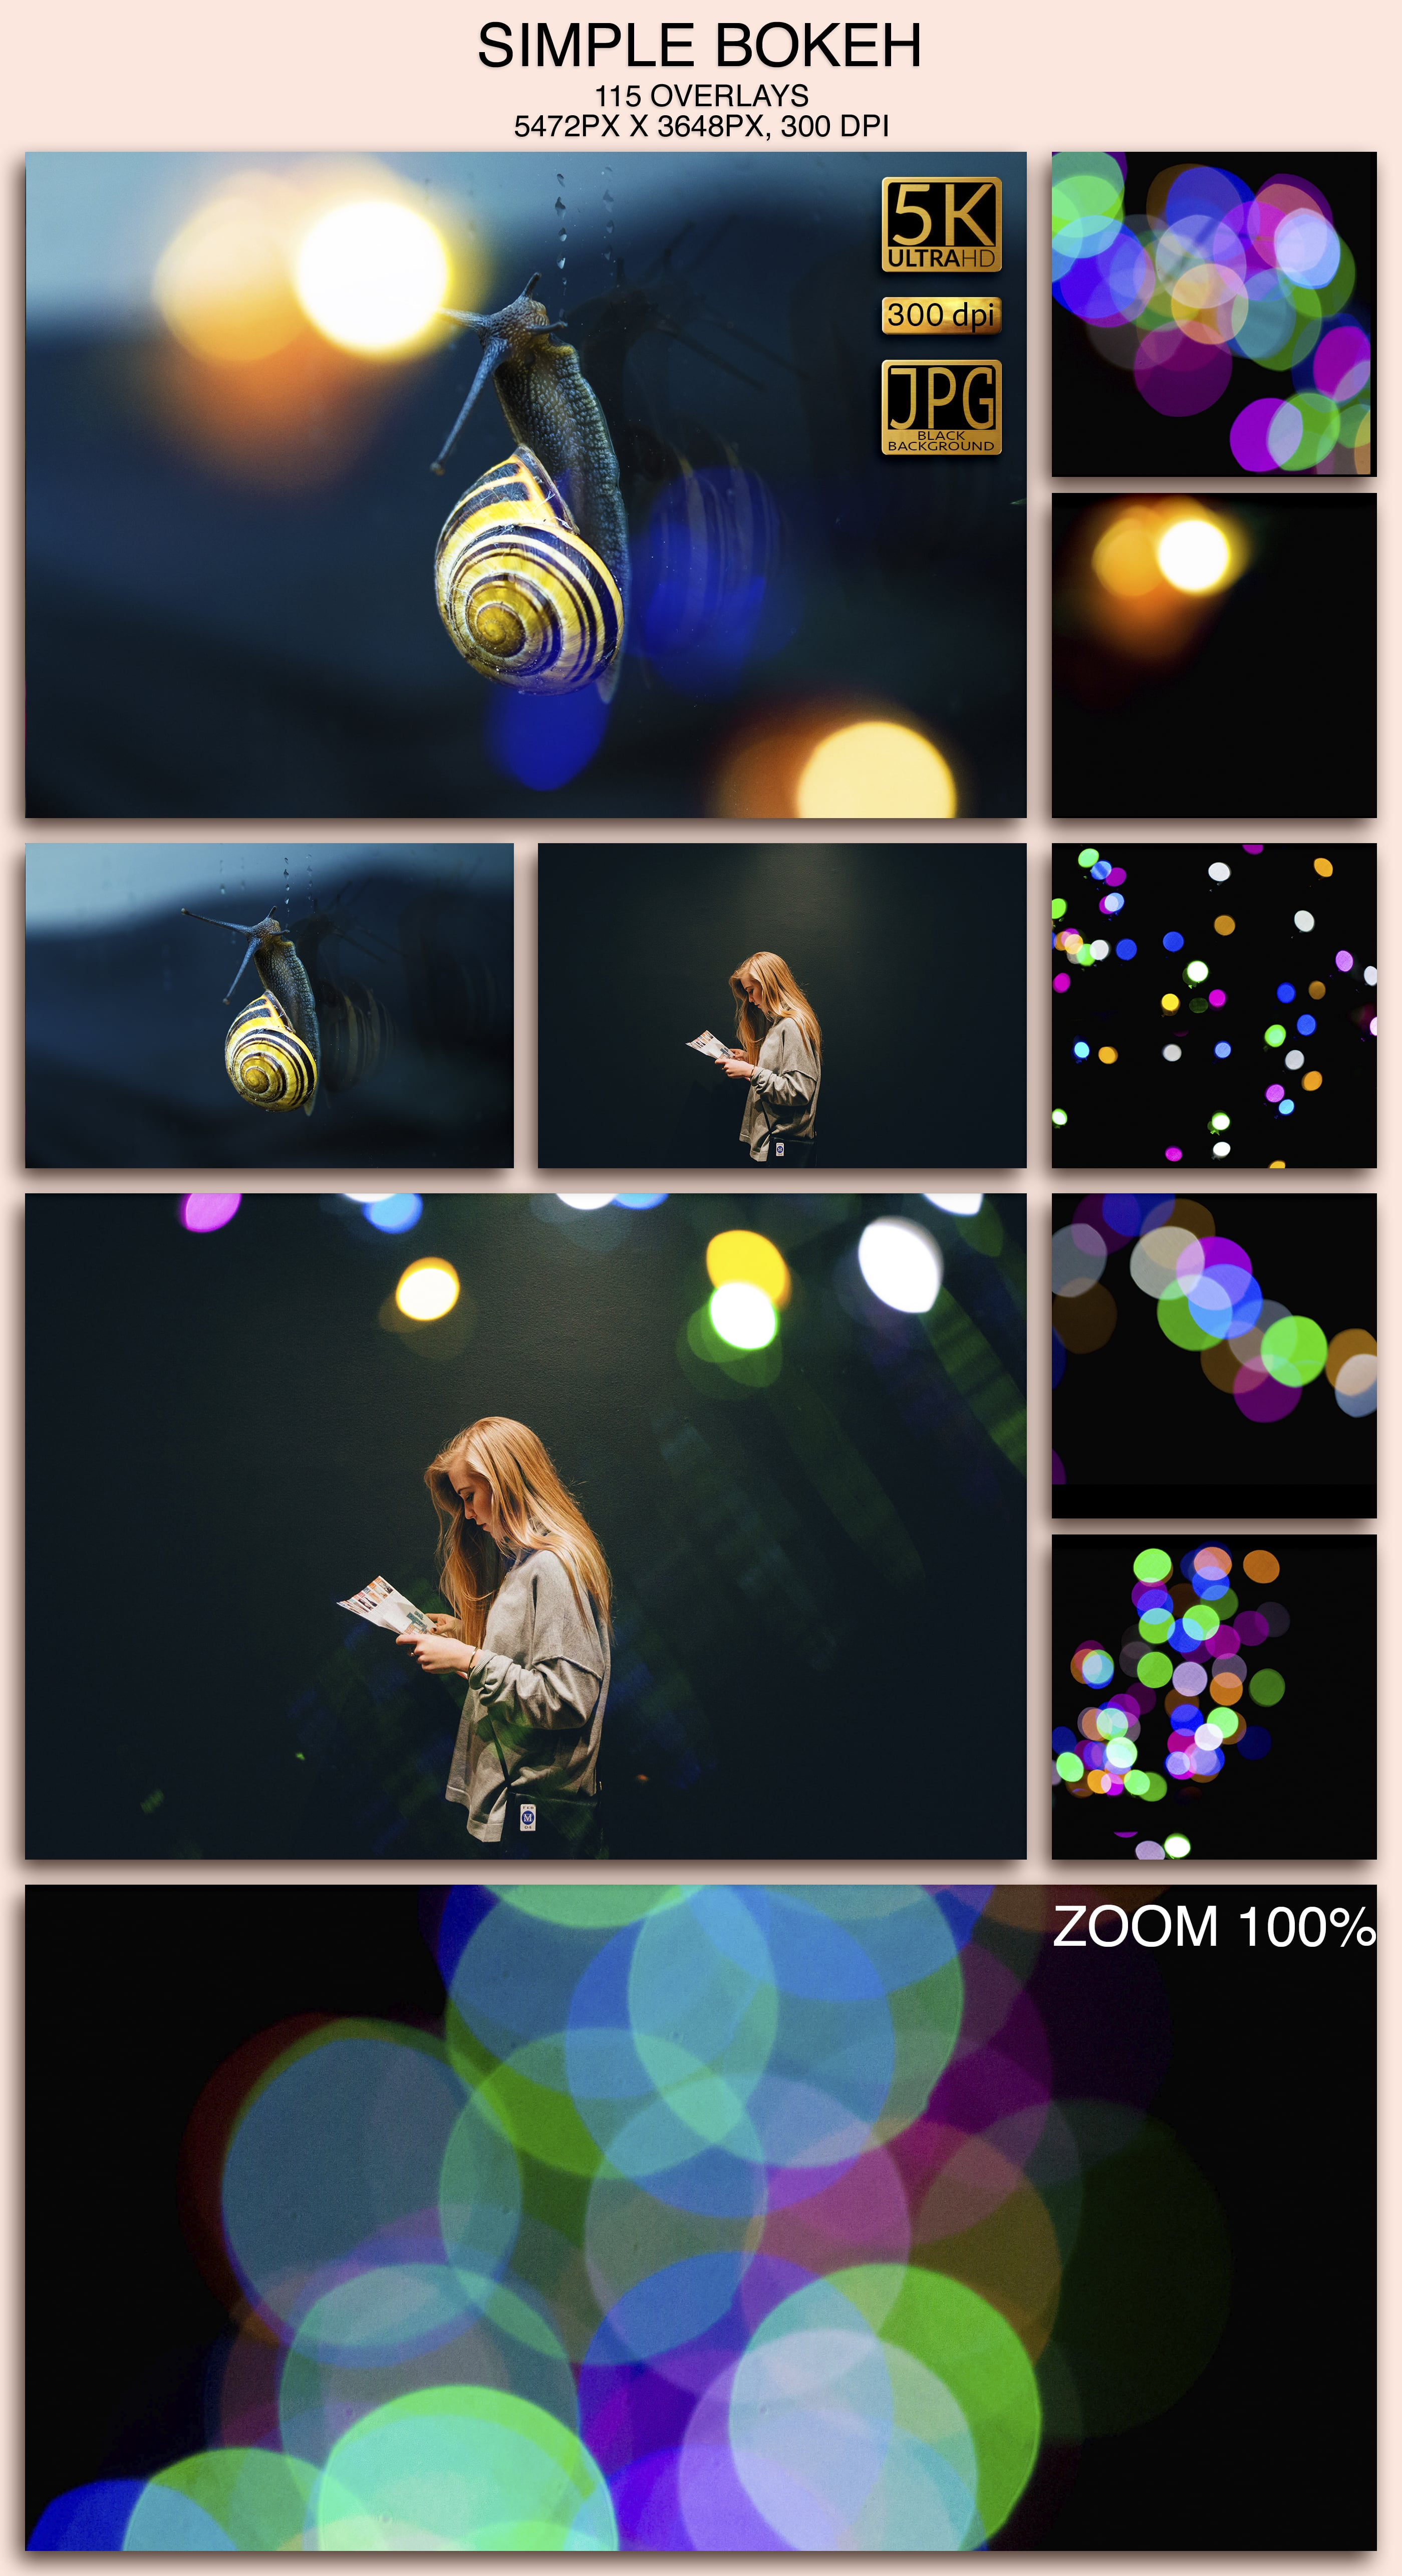 115 Simple Bokeh Overlays